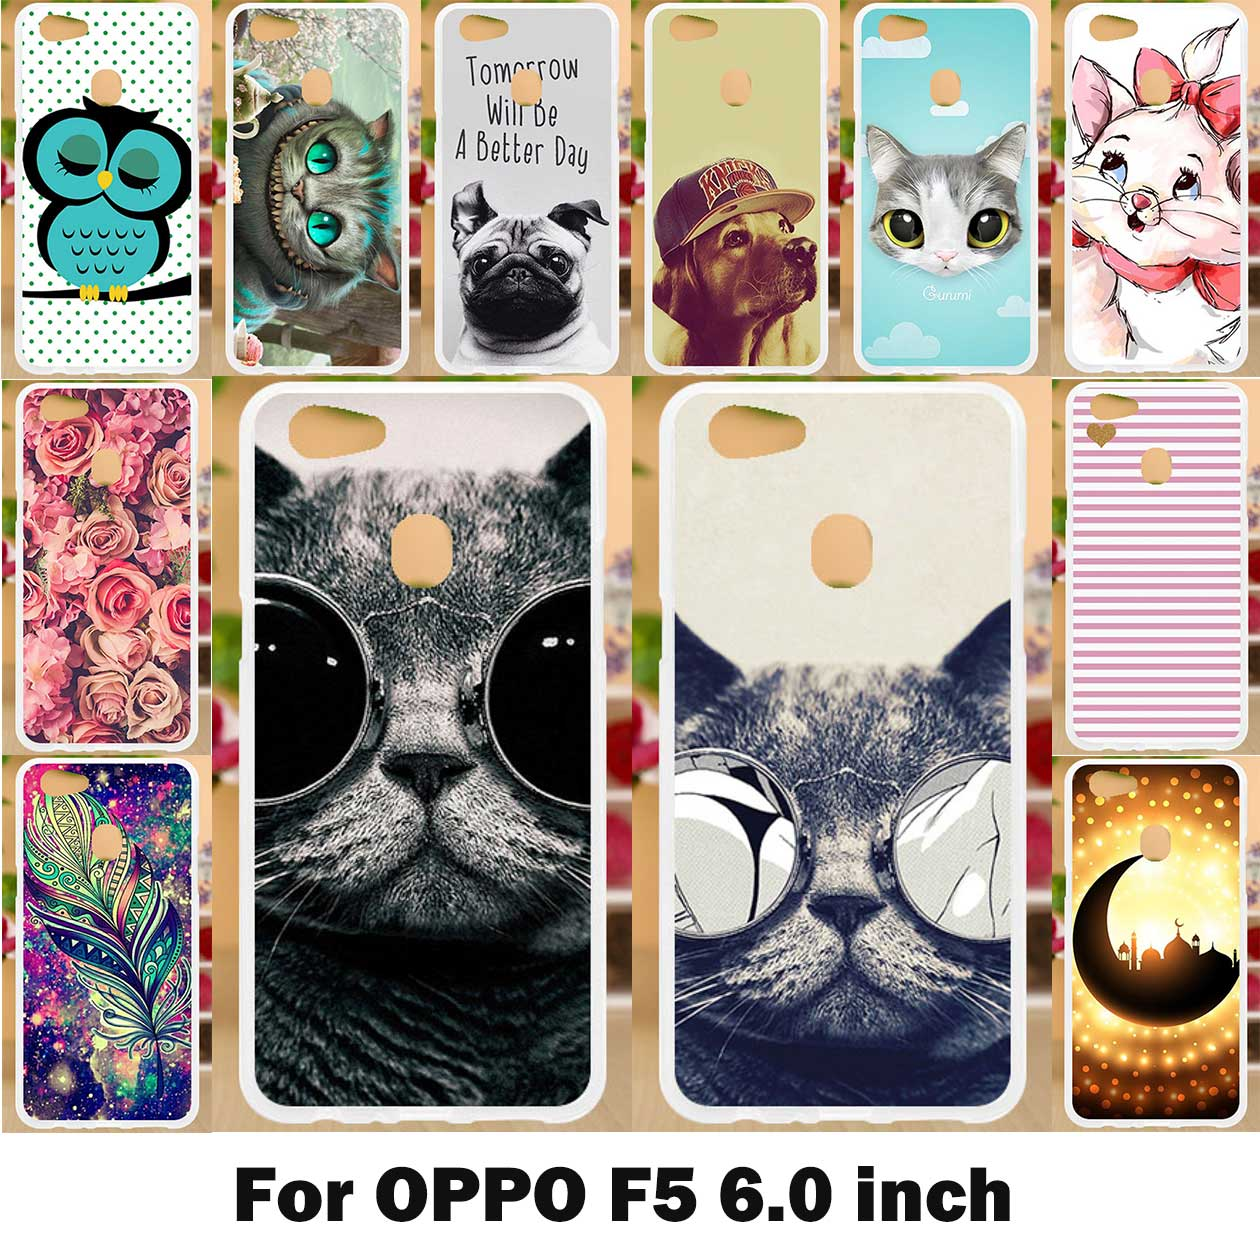 AKABEILA Soft TPU DIY Cases For OPPO F5 Case Silicone Coque Funda For OPPO F5 Cover For OPPOF5 F 5 6.0 Inch Cute Dogs Cats Bags